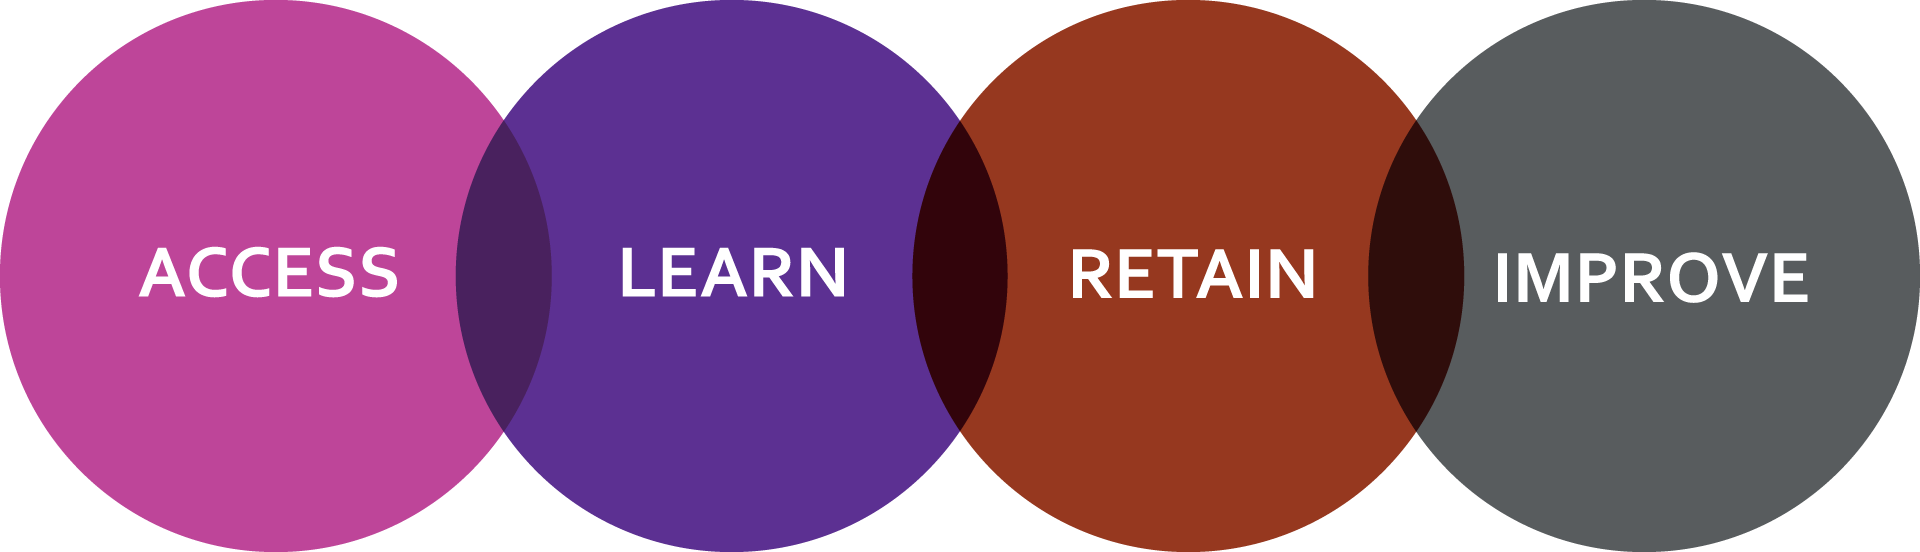 Assess, Learn, Retain, Improve